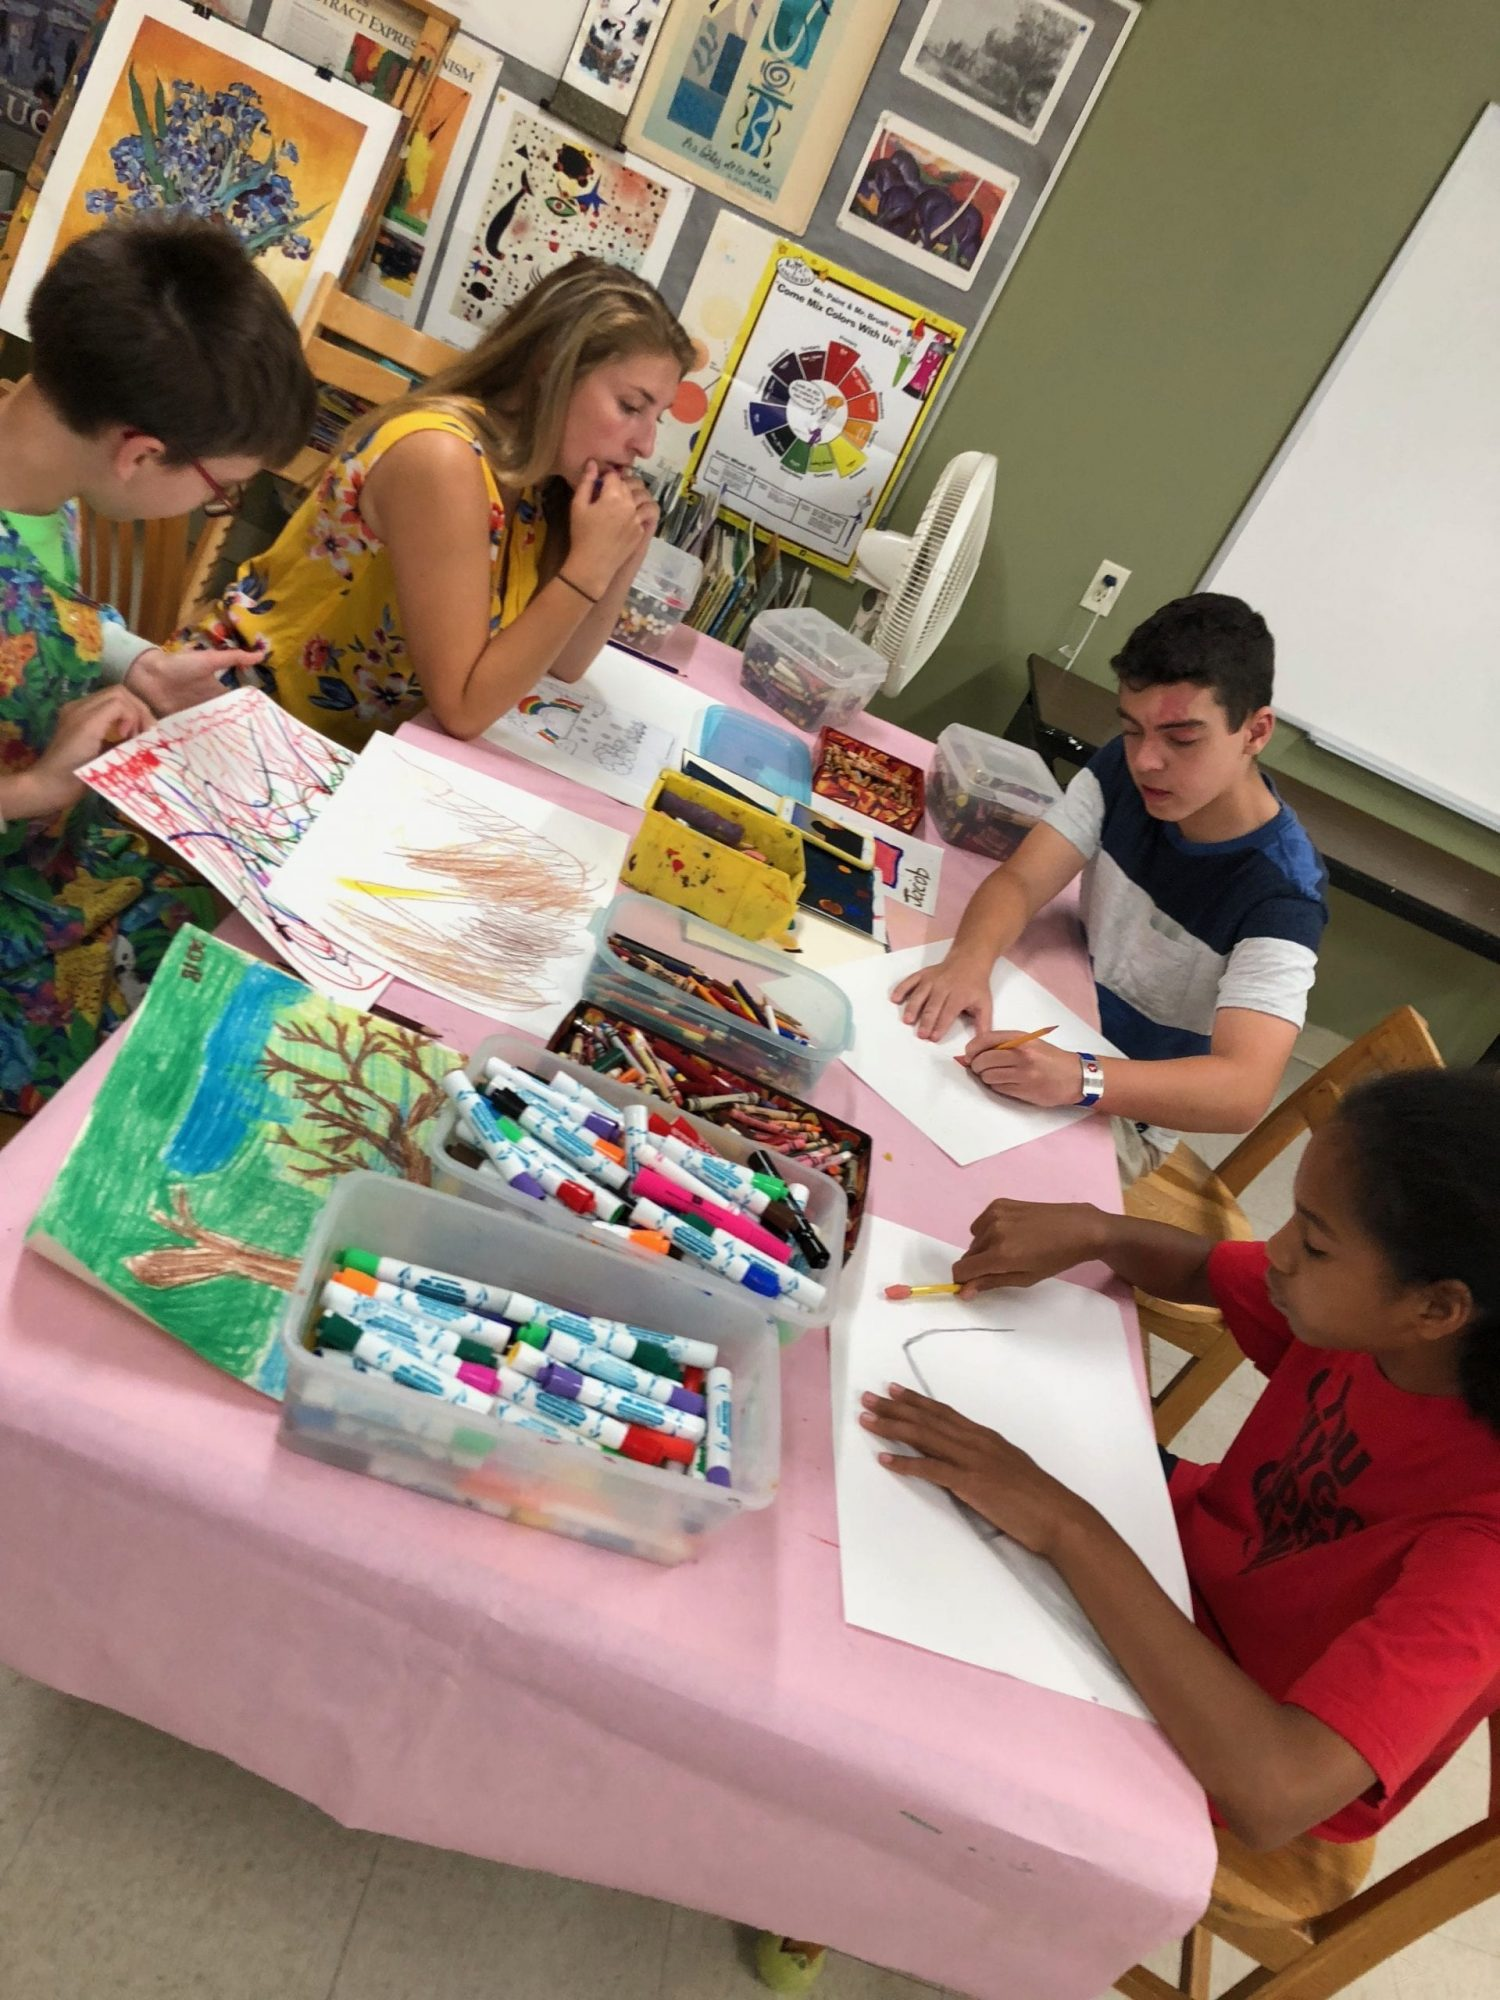 Four Cotting School students painting in the Art classroom